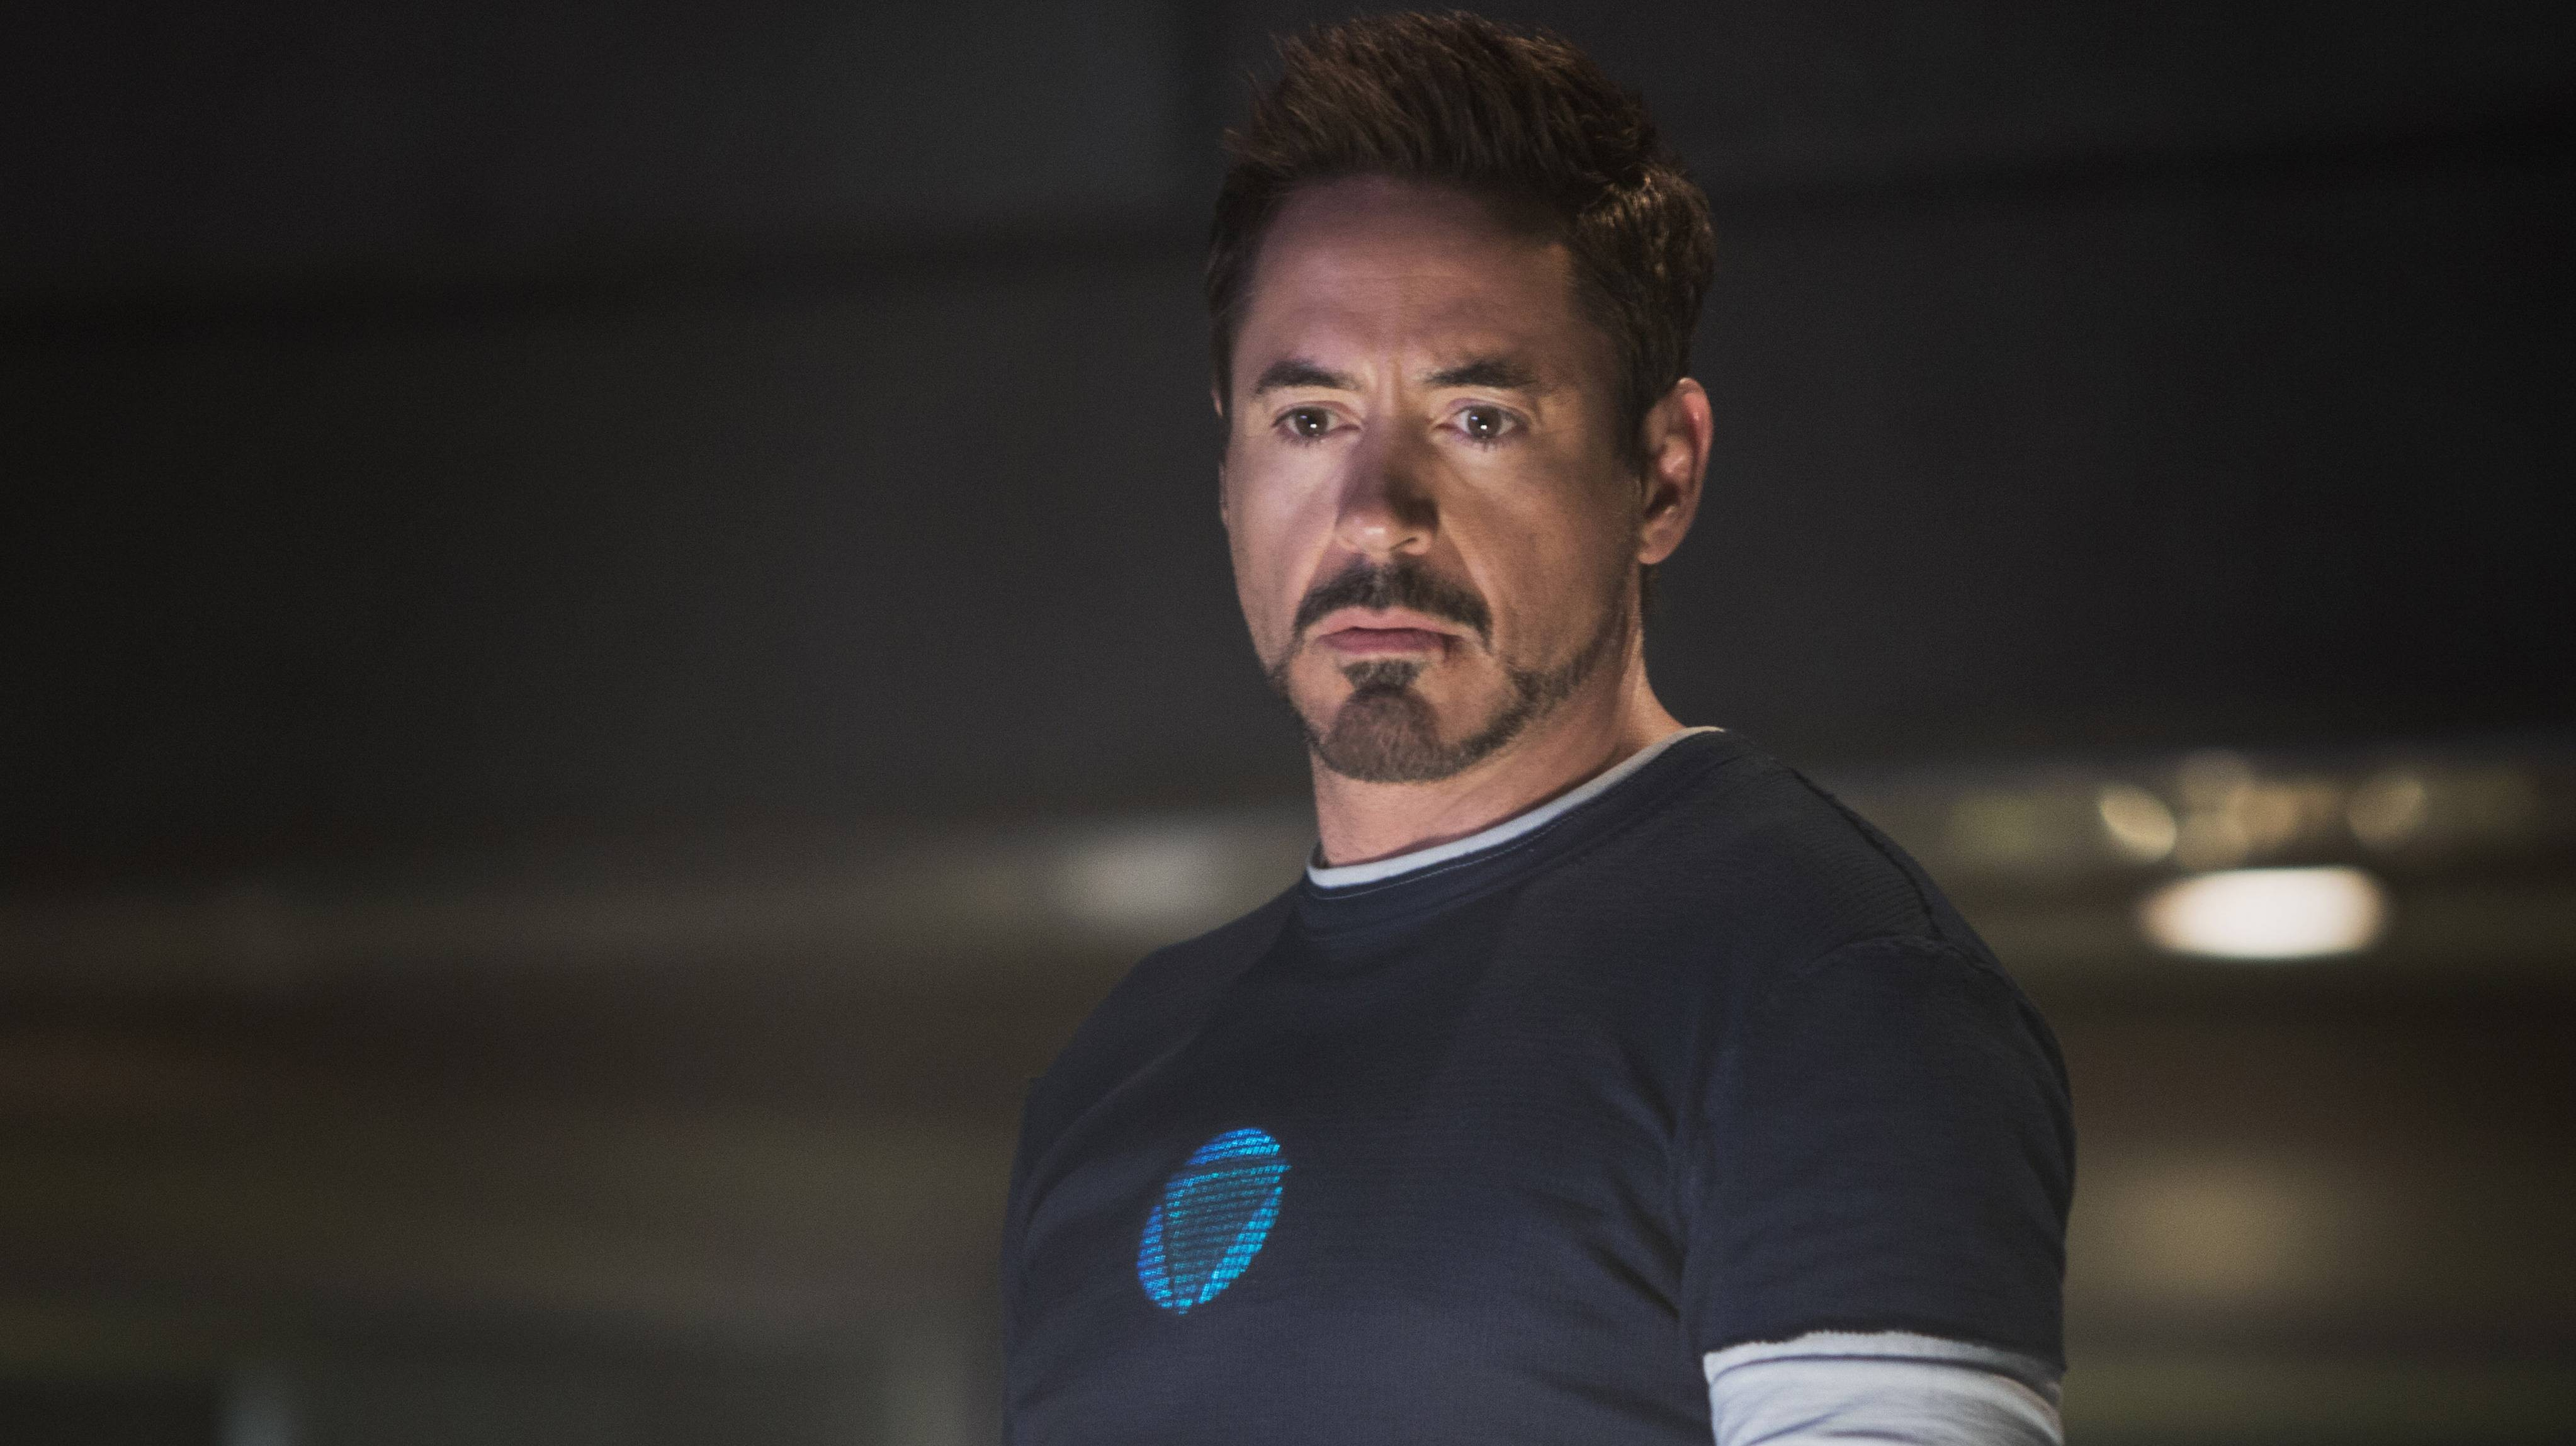 tony stark images hd - photo #16